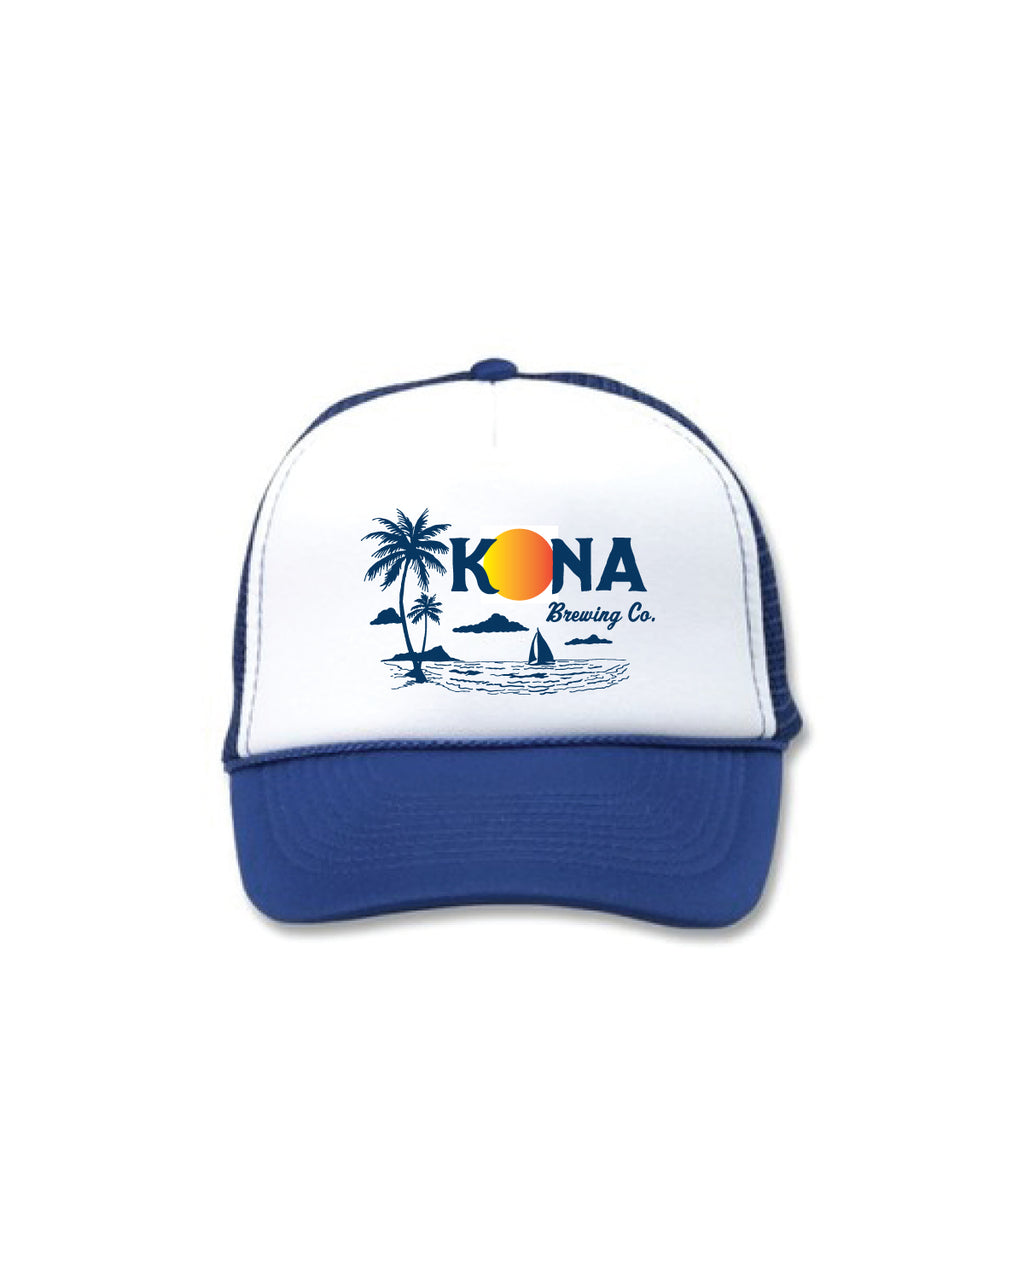 KONA SUSNET TRUCKER HAT- BLUE